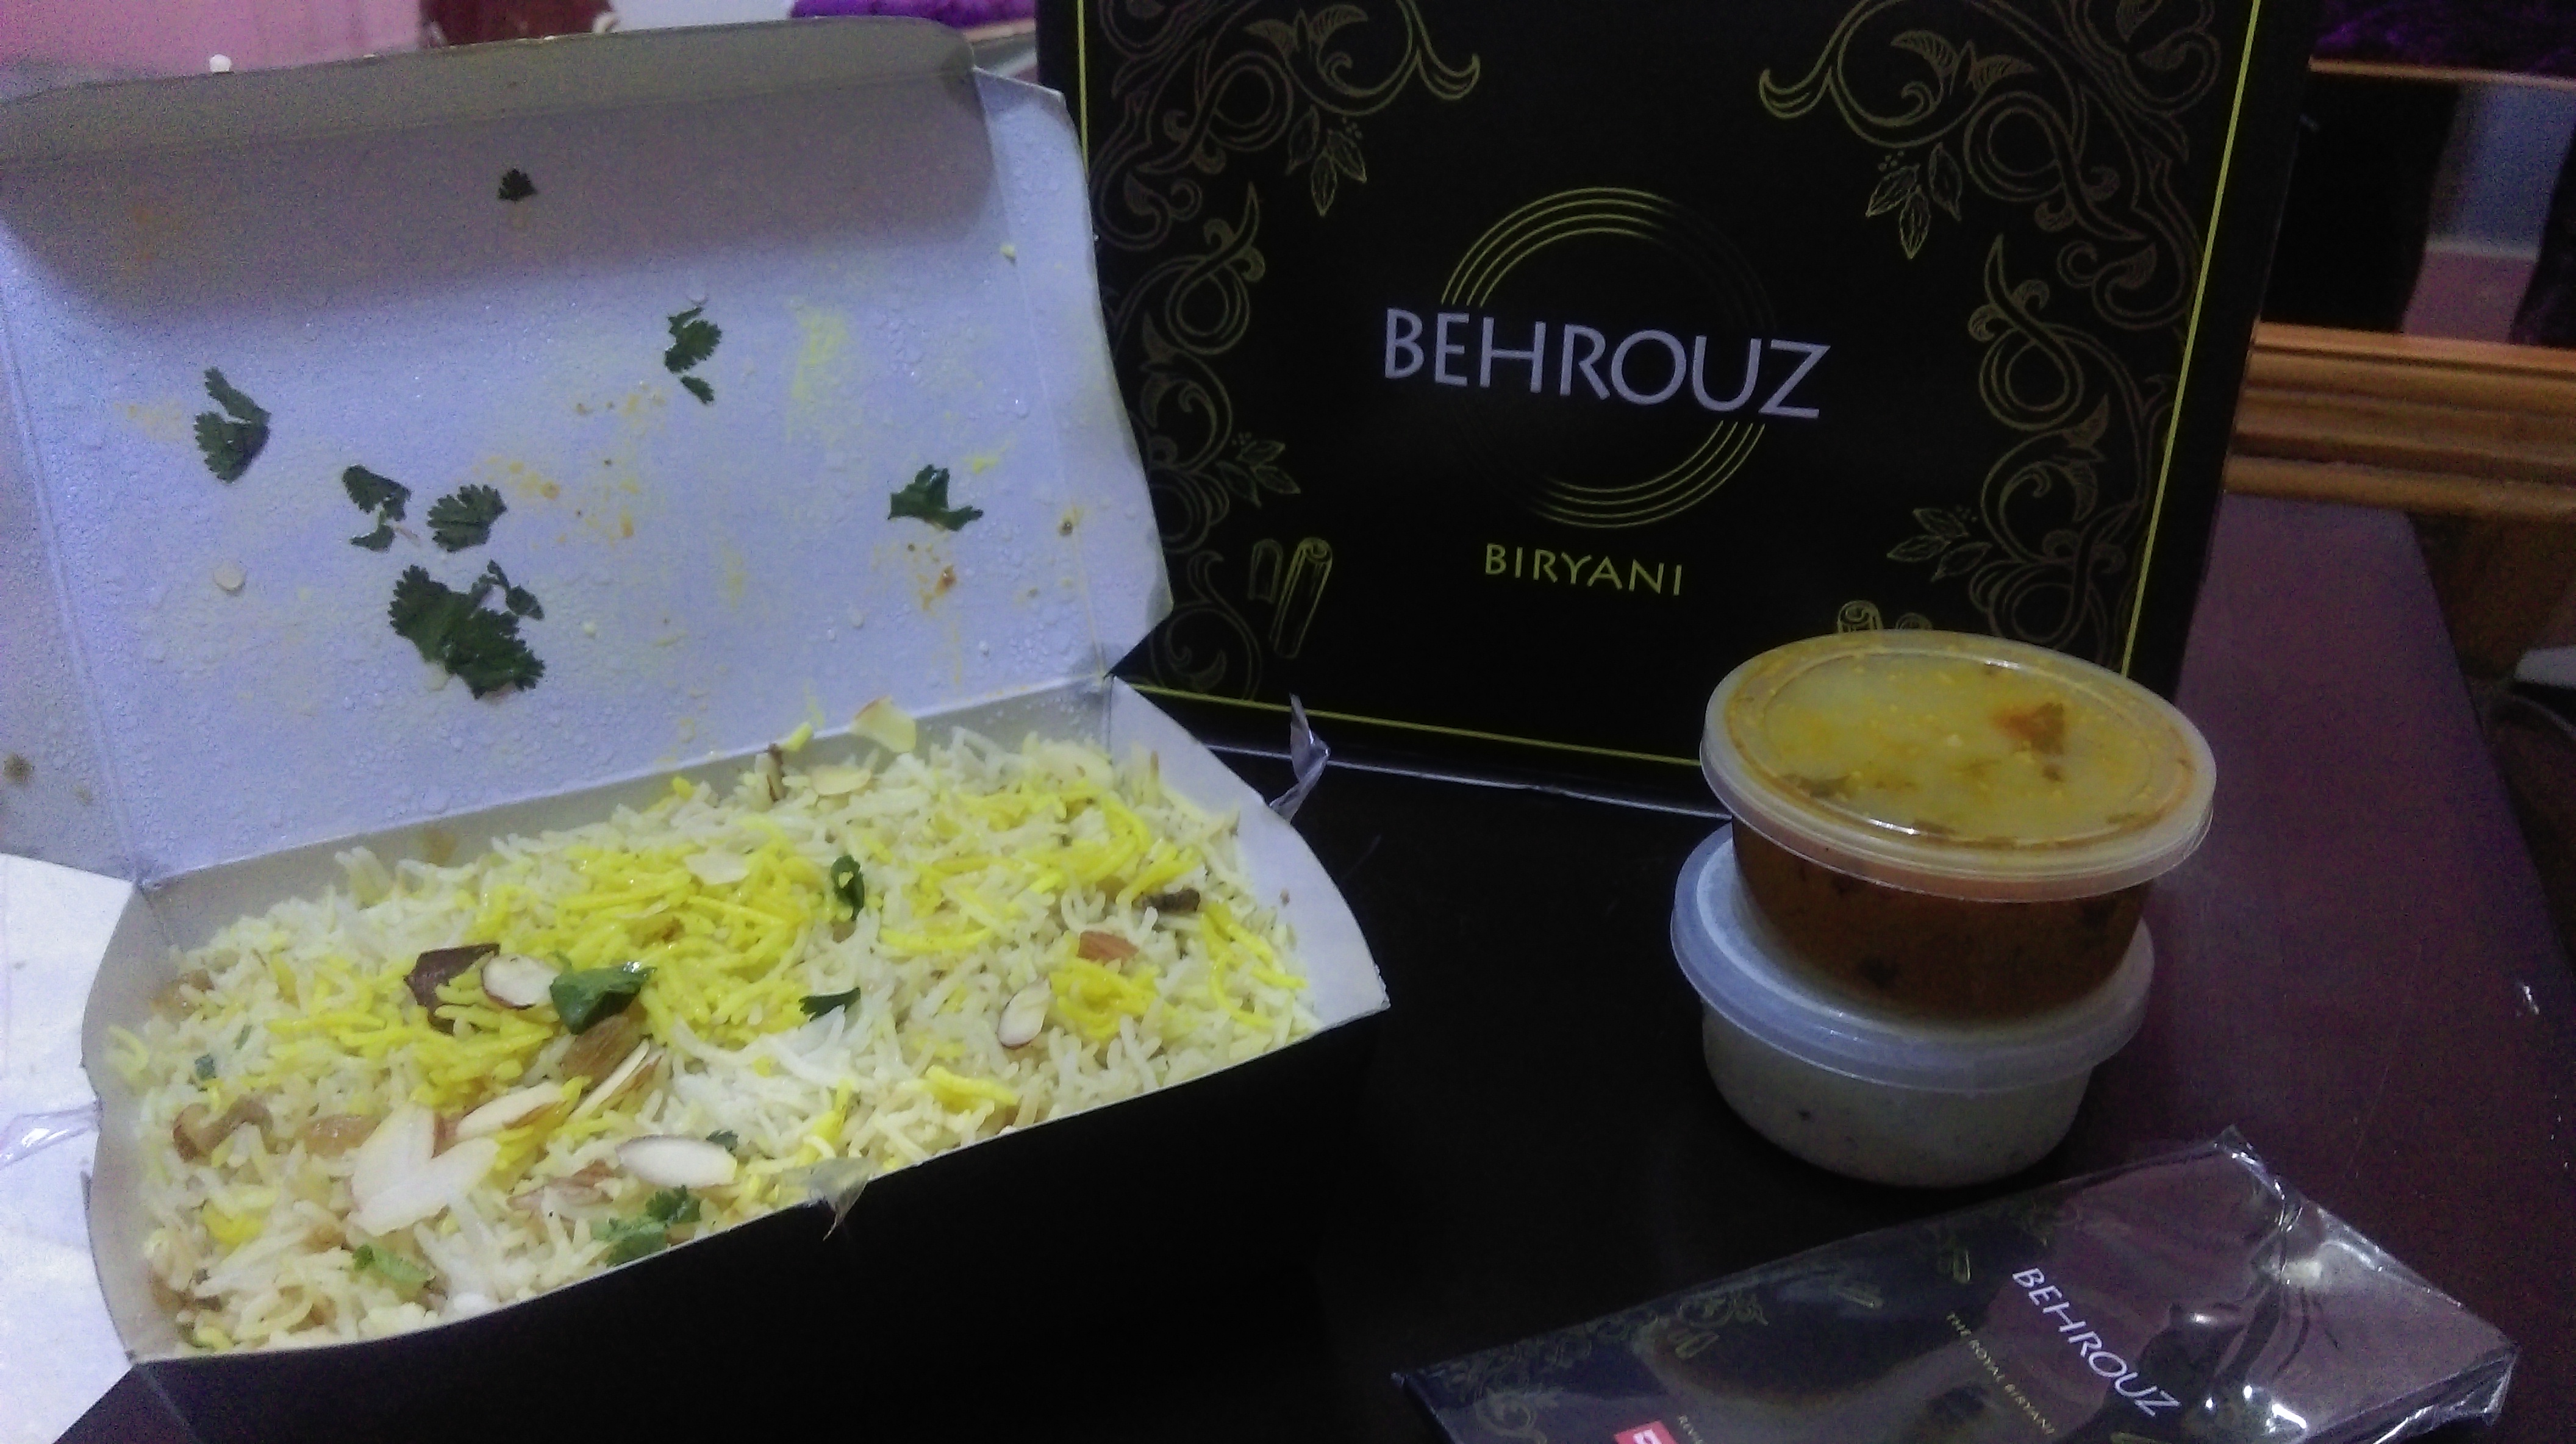 Behrouz Biryani : Delivers Delicious Hot Biryani At Your Doorstep